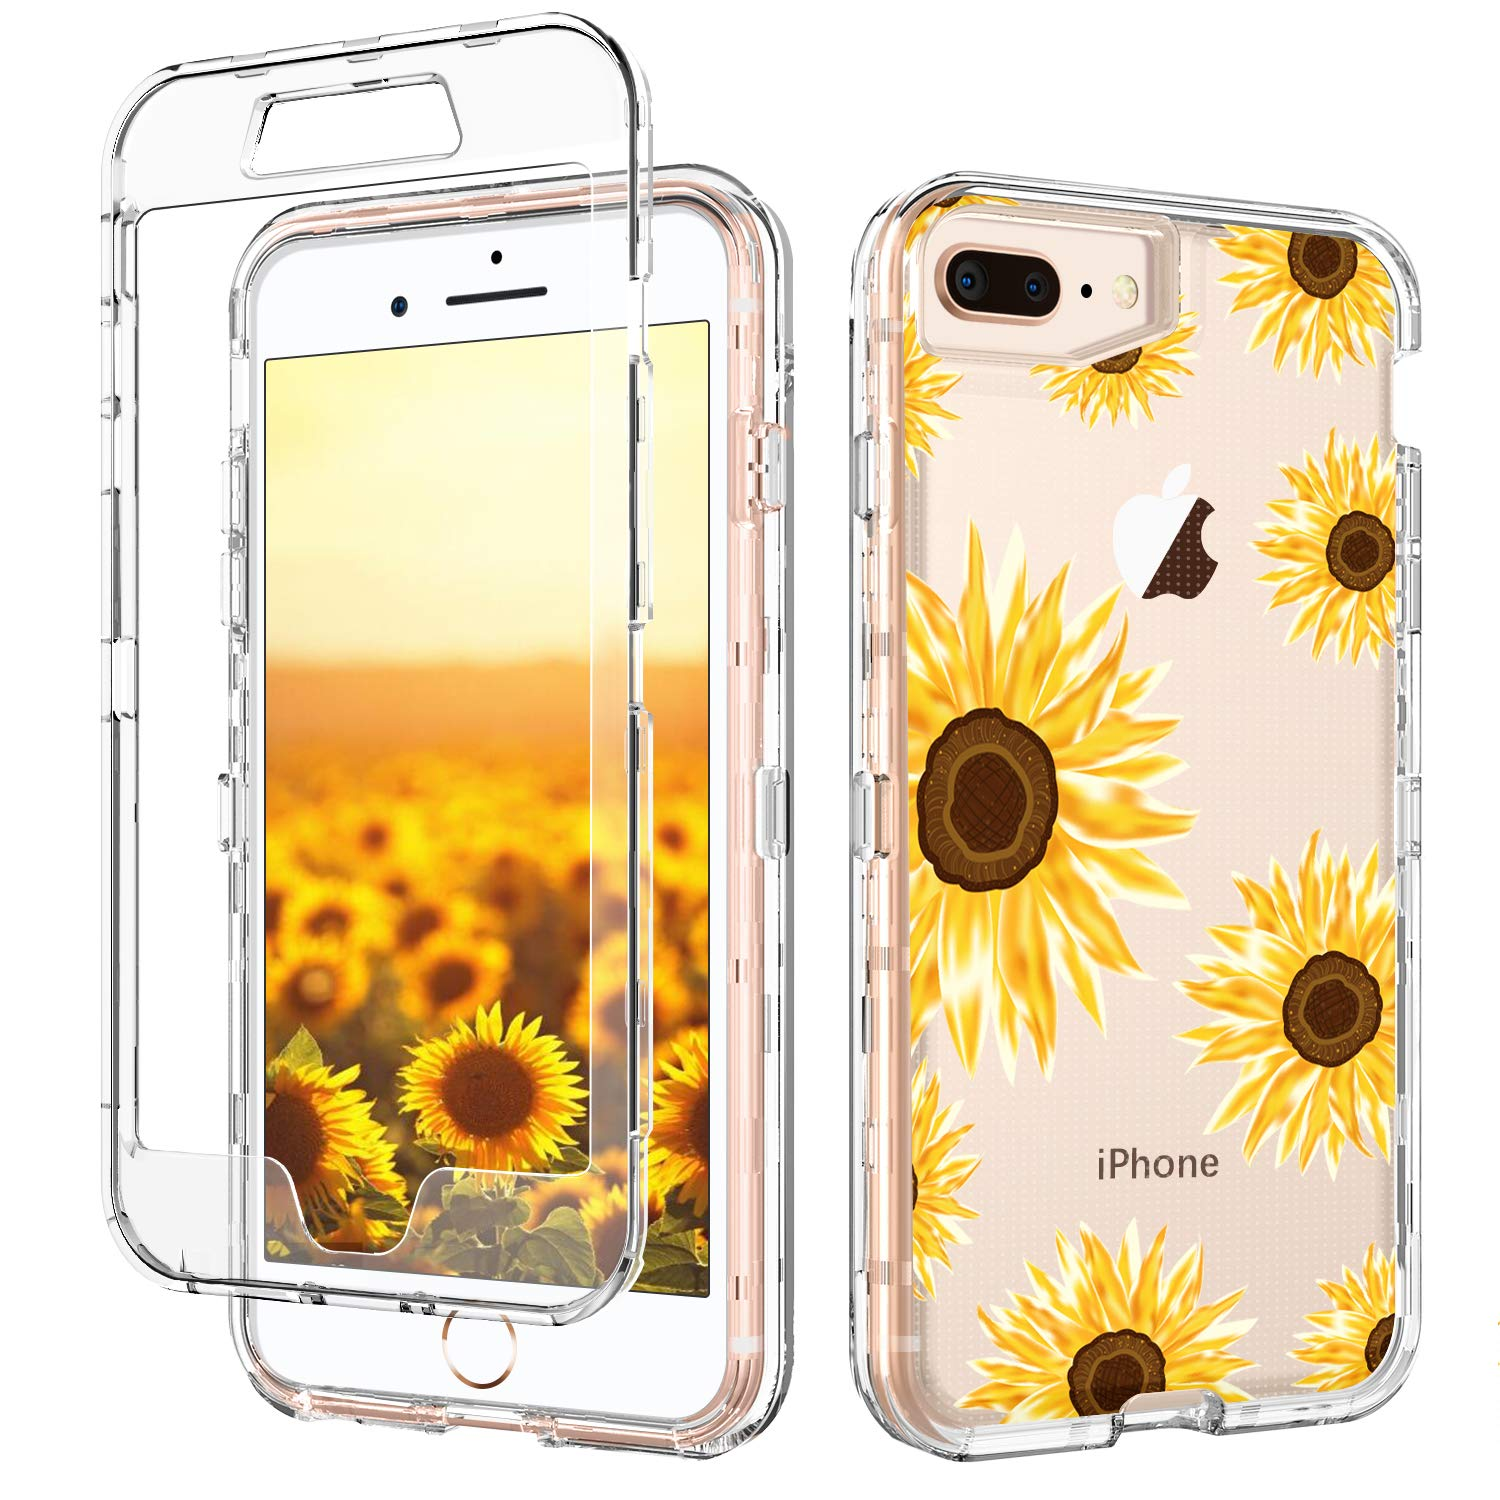 iPhone 8 Plus Case iPhone 7 Plus Case Clear Sunflower GUAGUA Floral Flowers Cover Three Layer Hybrid Hard PC Soft Rubber Shockproof Protective Phone Case for iPhone 7 Plus/8 Plus Transparent Yellow